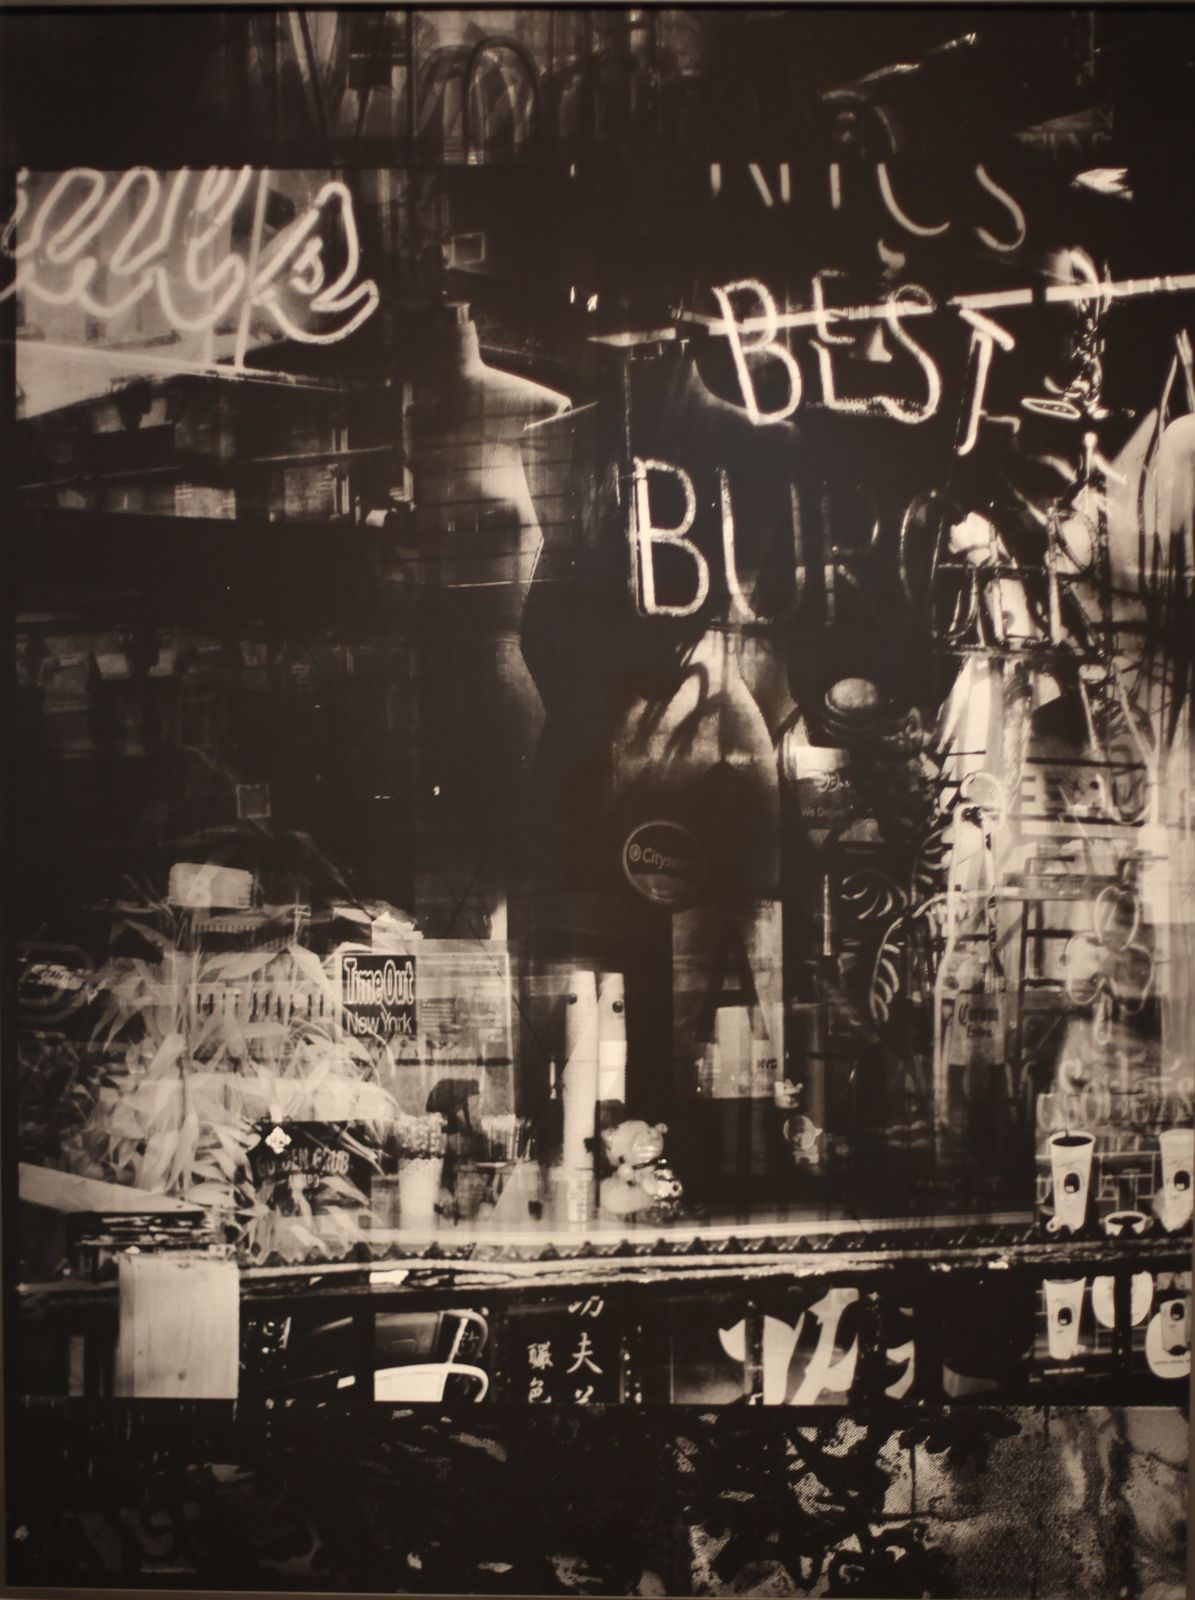 """Beltline Burgers, Atlanta (Reflection)"", 2019 de Valerie BELIN - Courtesy de la galerie Nathalie Obadia © Photo Éric Simon"